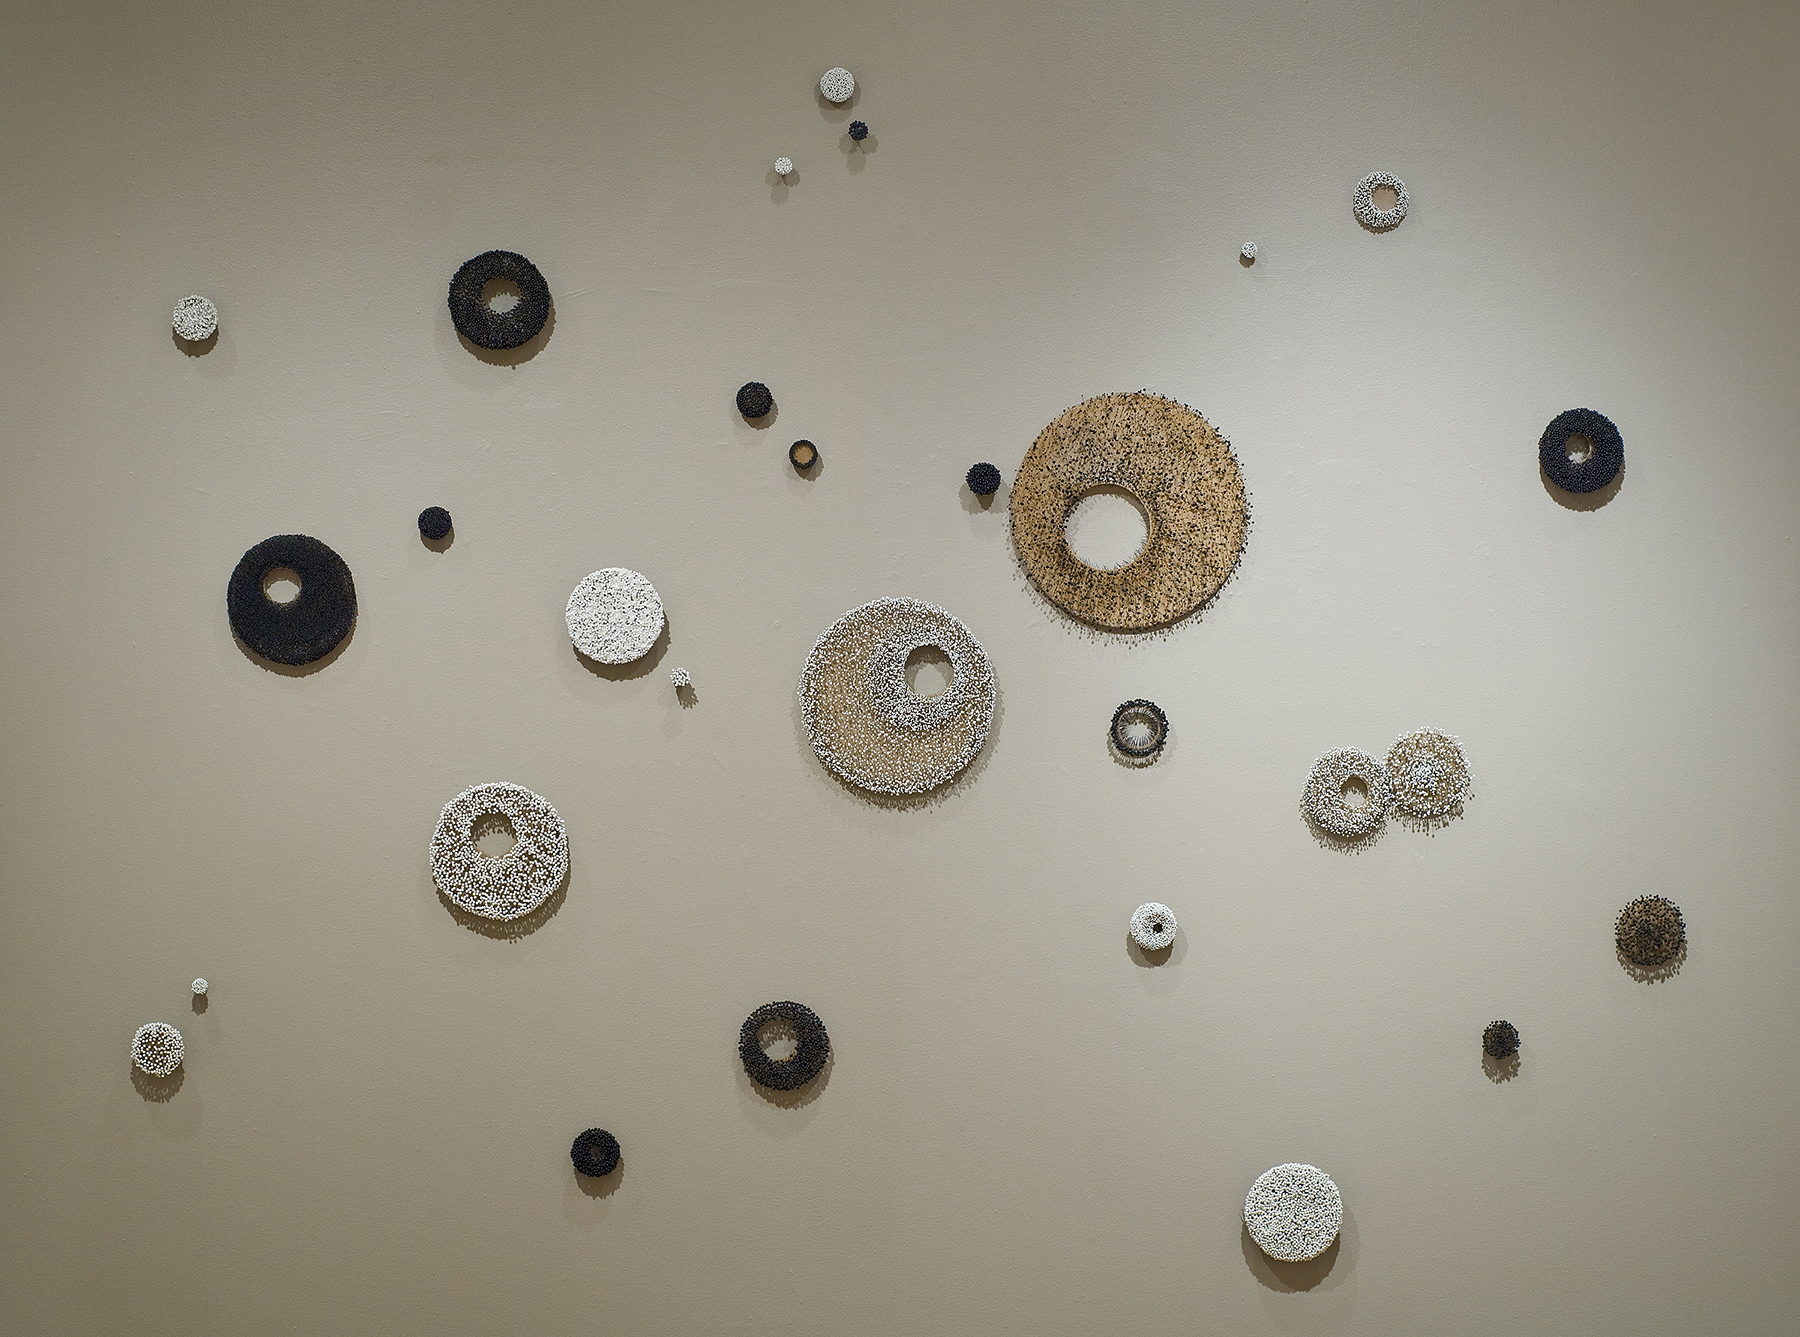 Full Circle, florist pins on waxed fabric and steel hoops, 12'x12'x12', installation size may vary with site, 2015